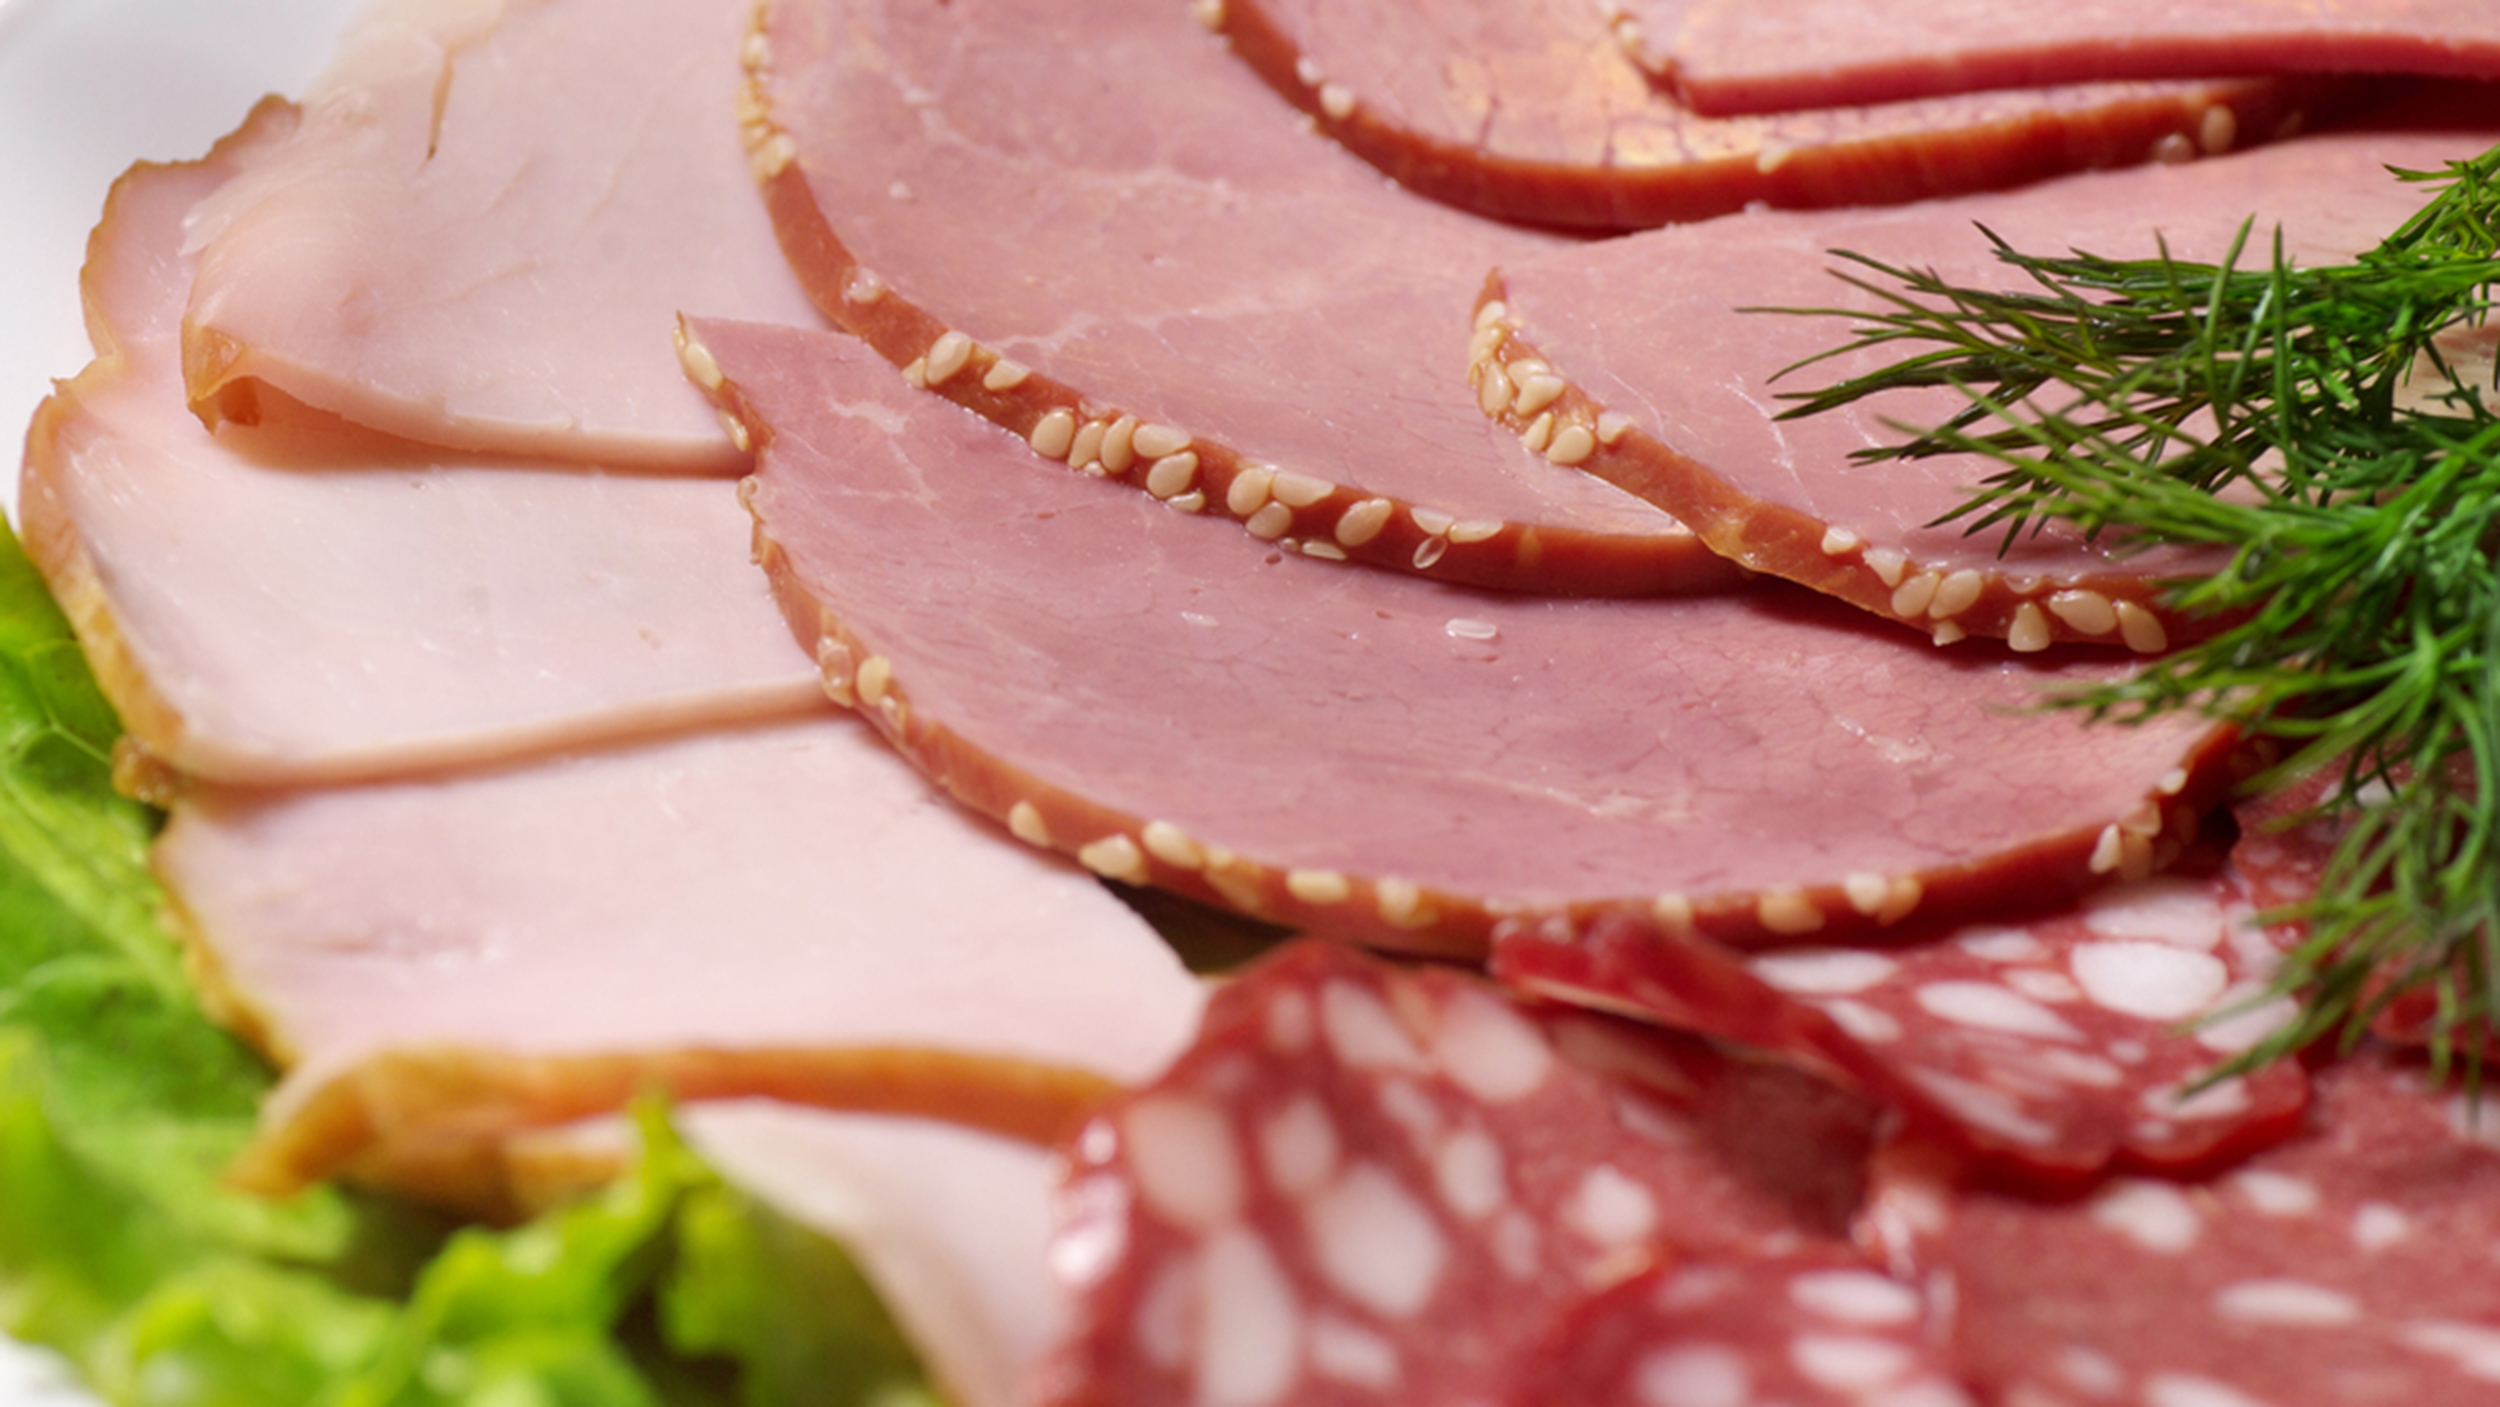 Are deli meats safe? What you need to know